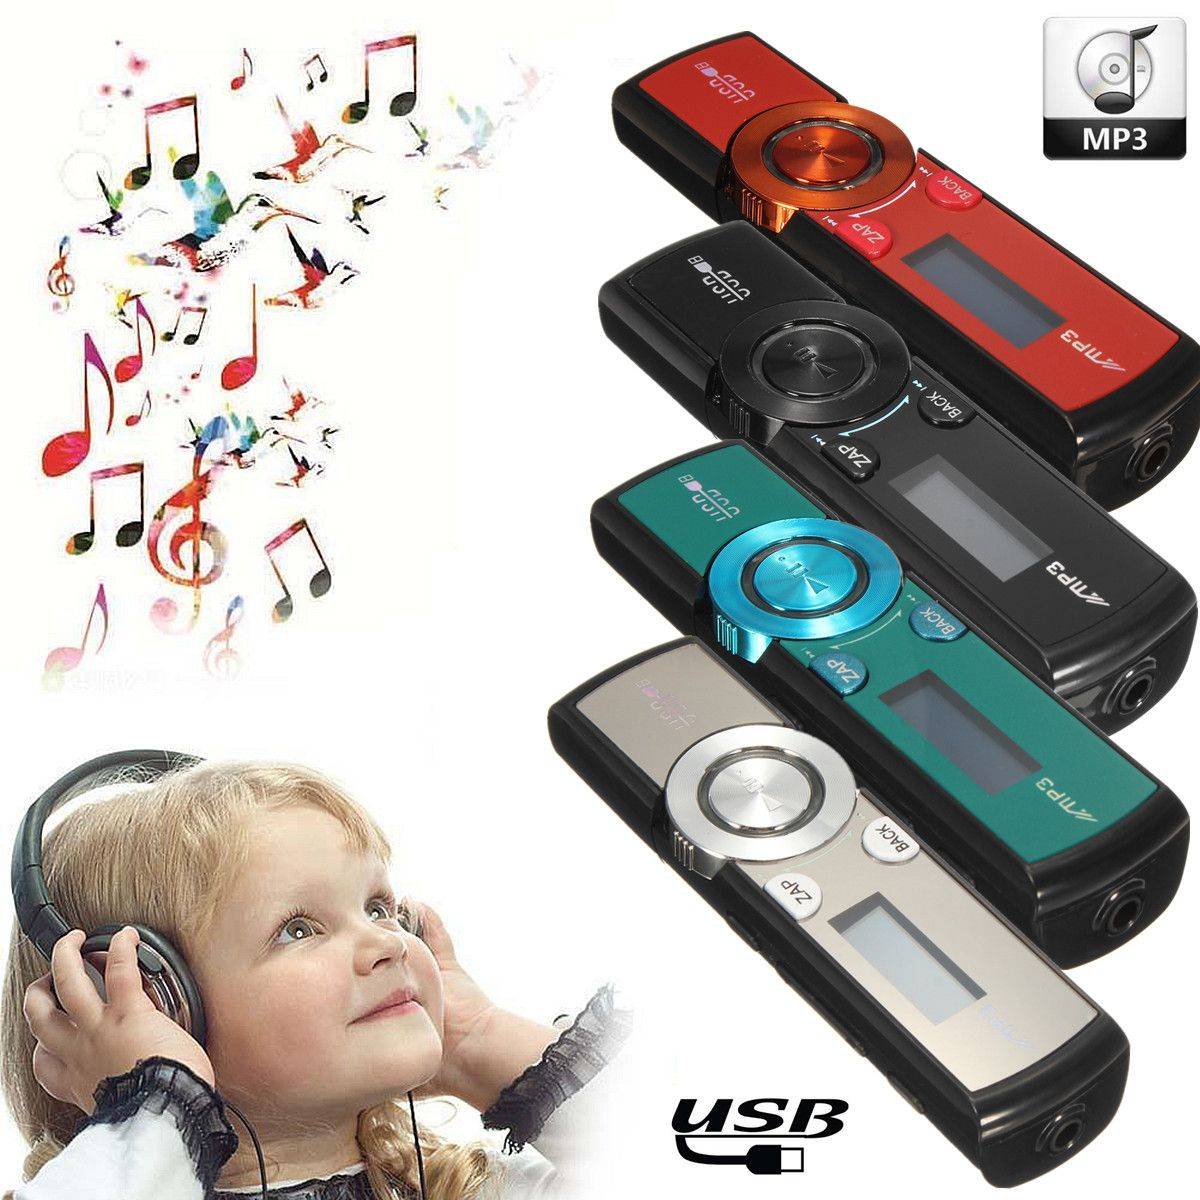 Clip 2019new Stil Hören Musik Kopfhörer Aggressiv Kinco 32 Gb Lcd Hd Bildschirm Usb Mp3/wma Player Mini Media Fm Radio Micro Sd/tf Karte